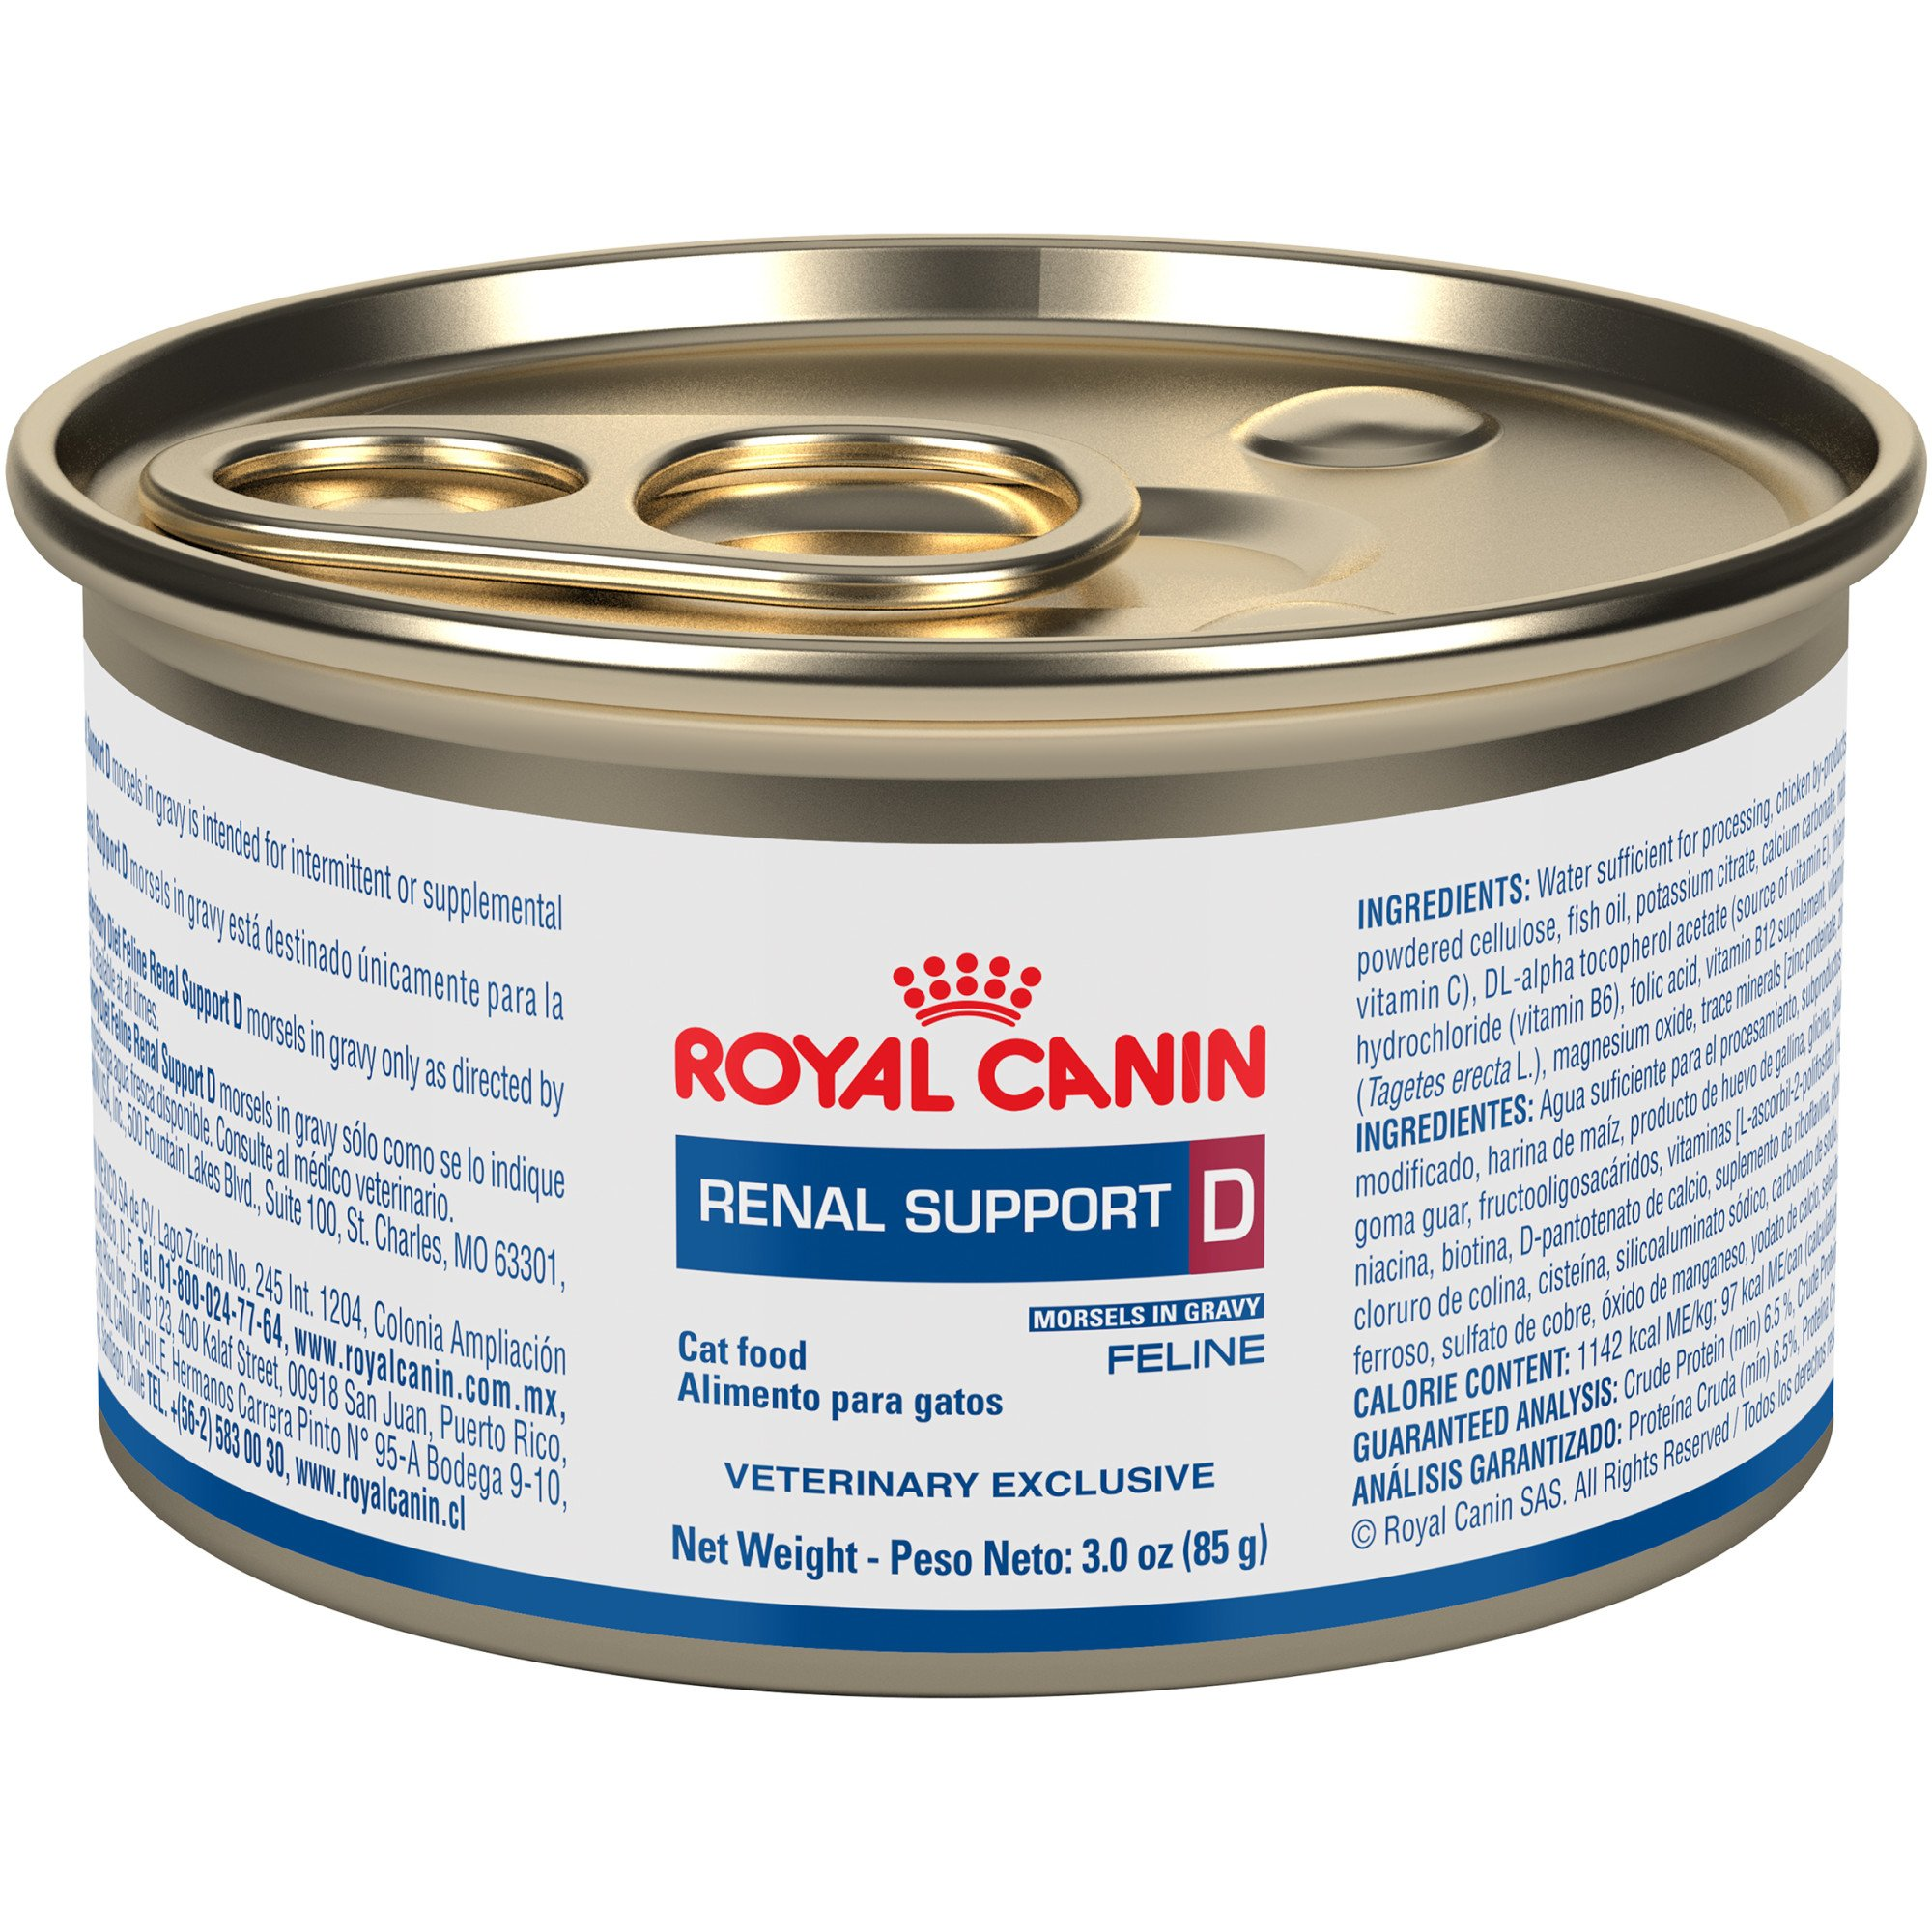 Royal Canin Veterinary Diet Feline Renal Support D Morsels In Gravy Canned Cat Food, 3 oz., Case of 24, 24 X 3 OZ